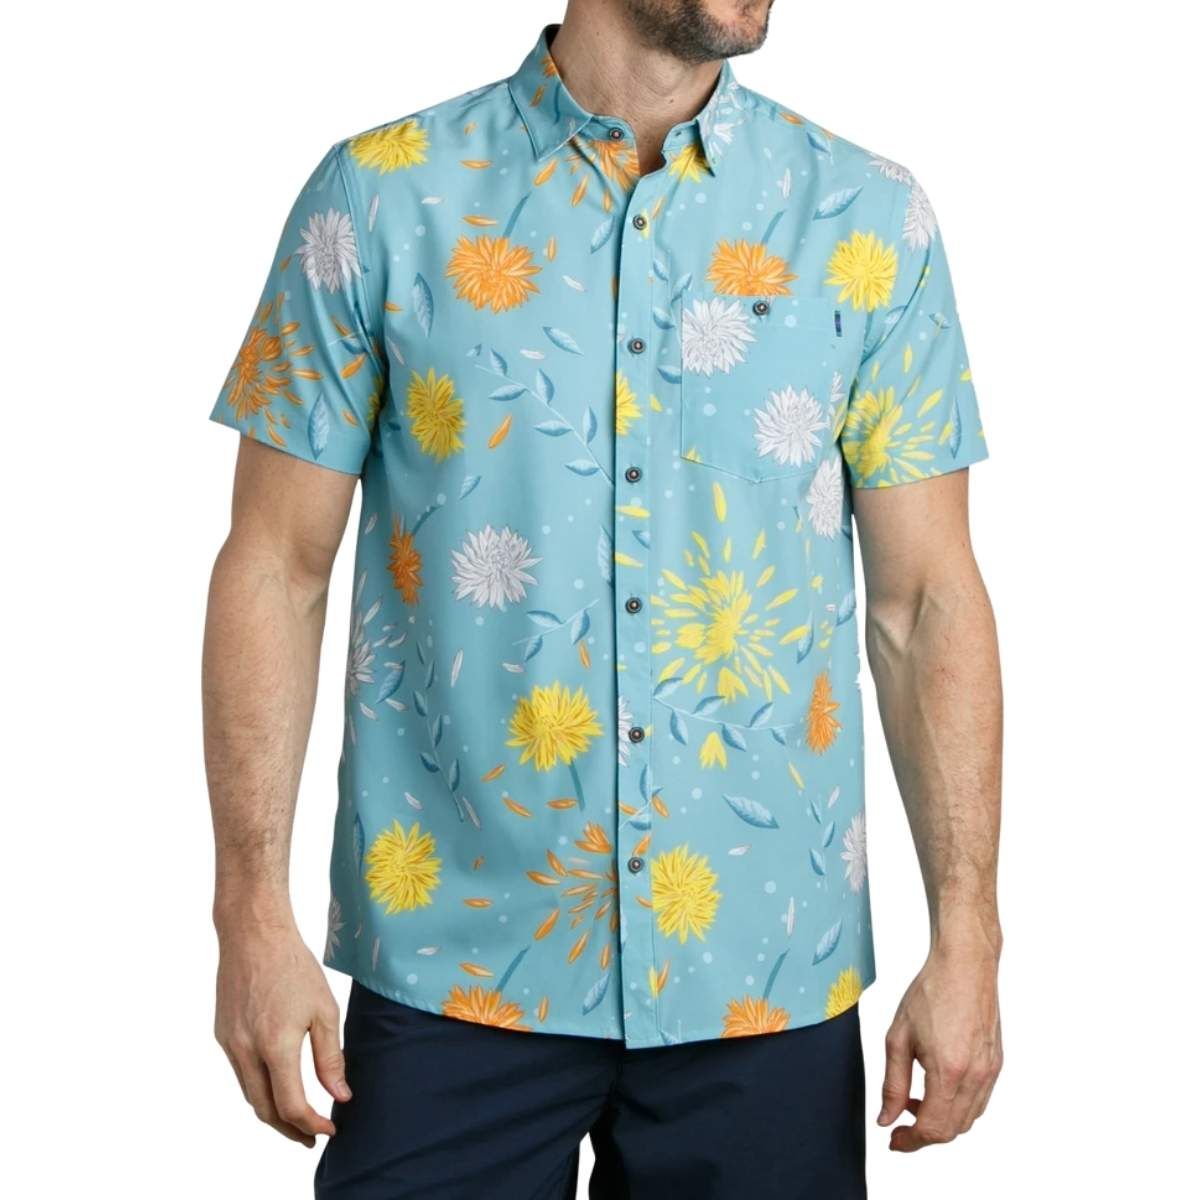 William Murray Mums The Word Button Down Shirt